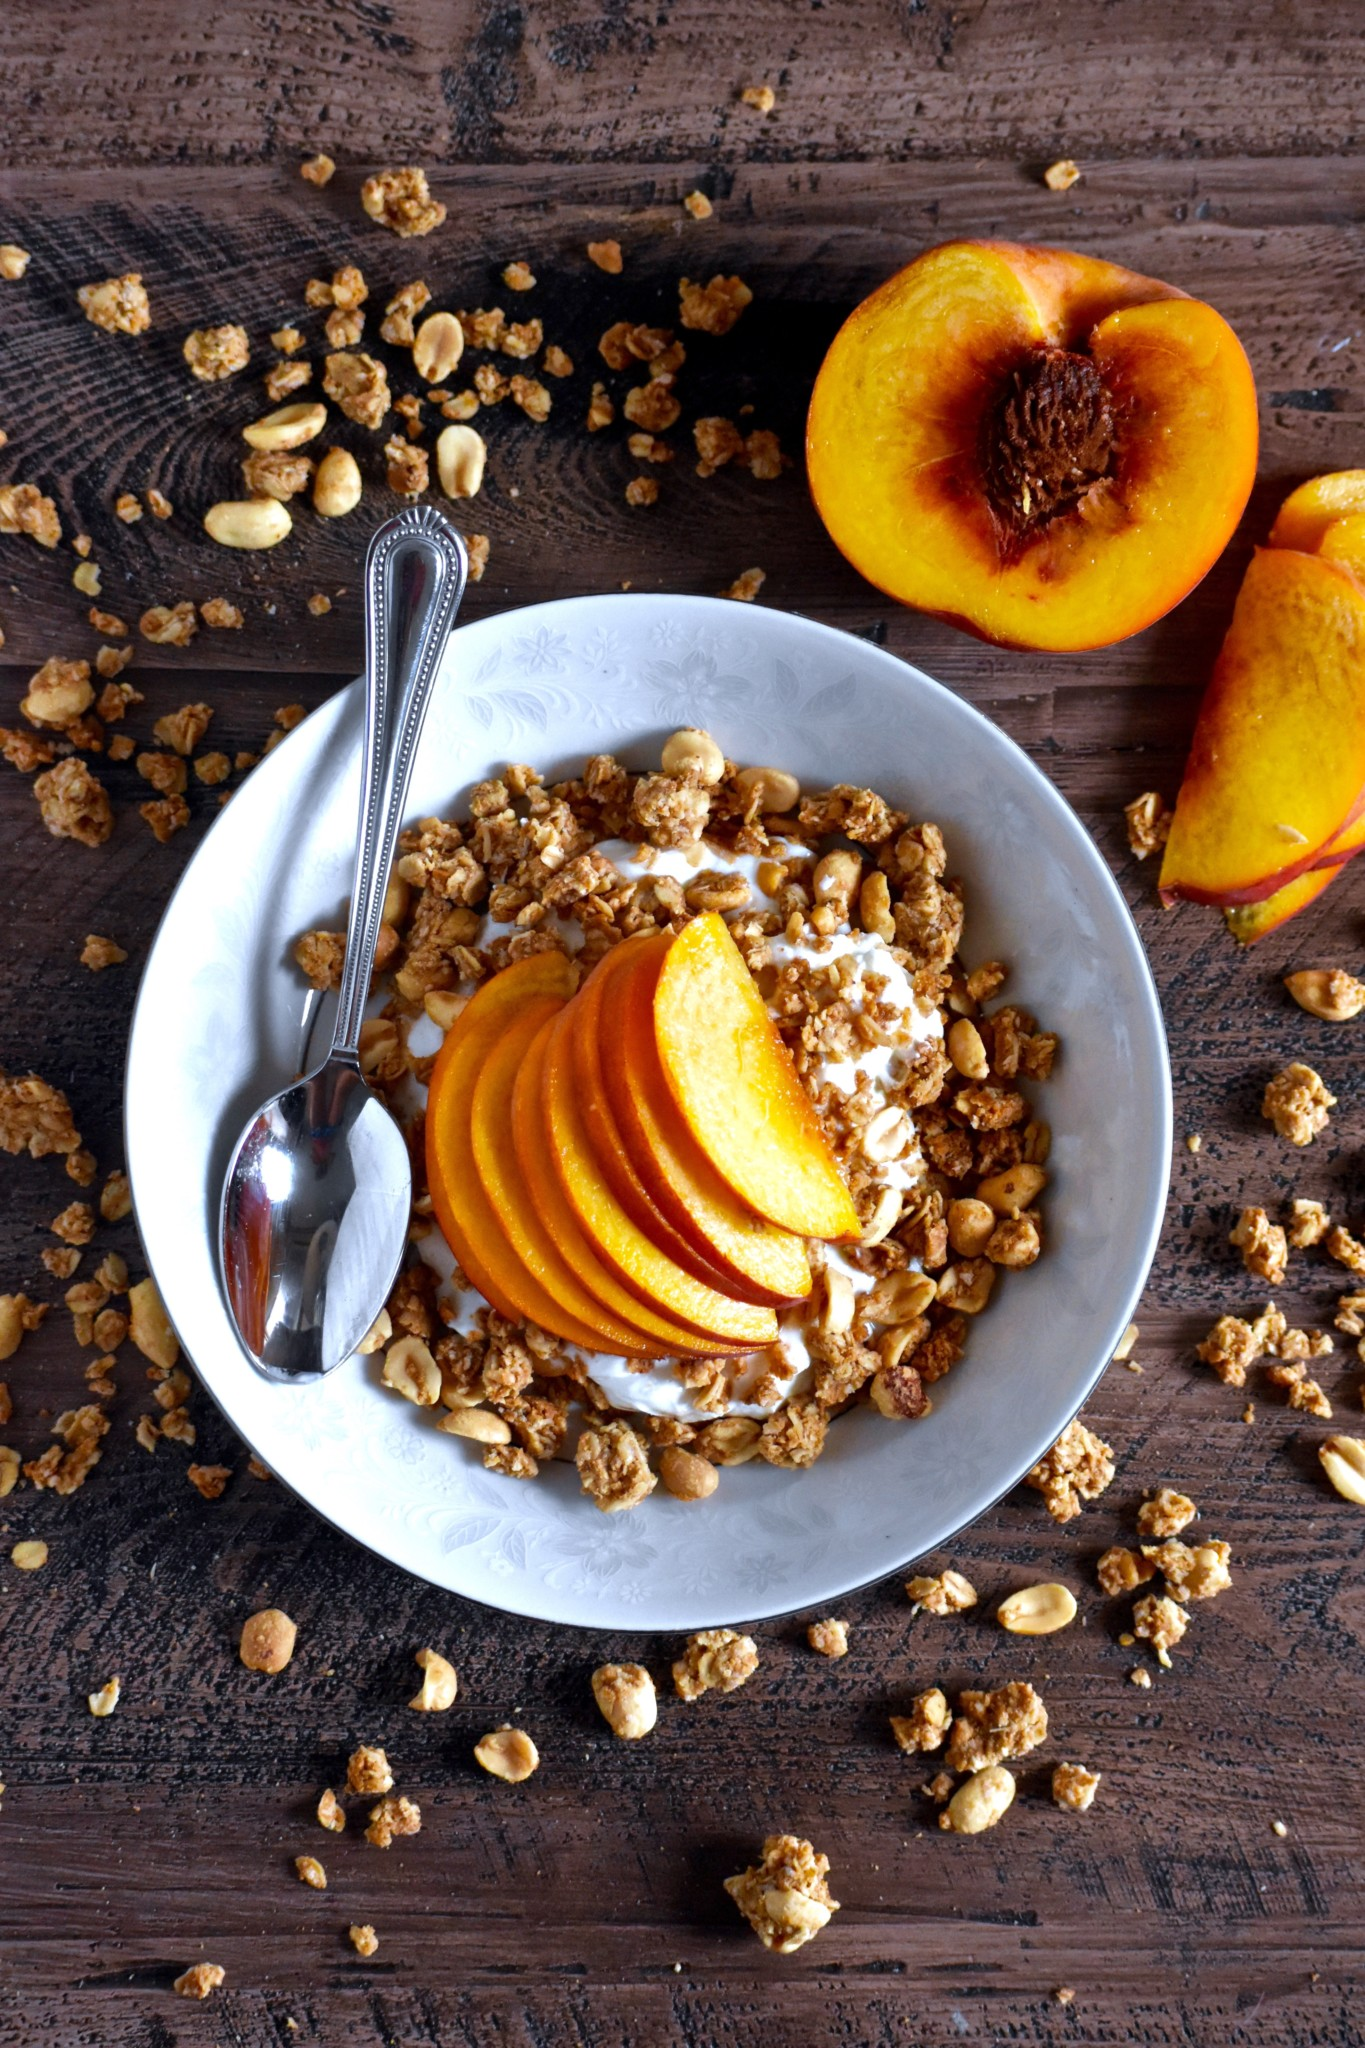 easiest ever peanut butter peach yogurt bowl - a perfectly balanced morning meal // cait's plate